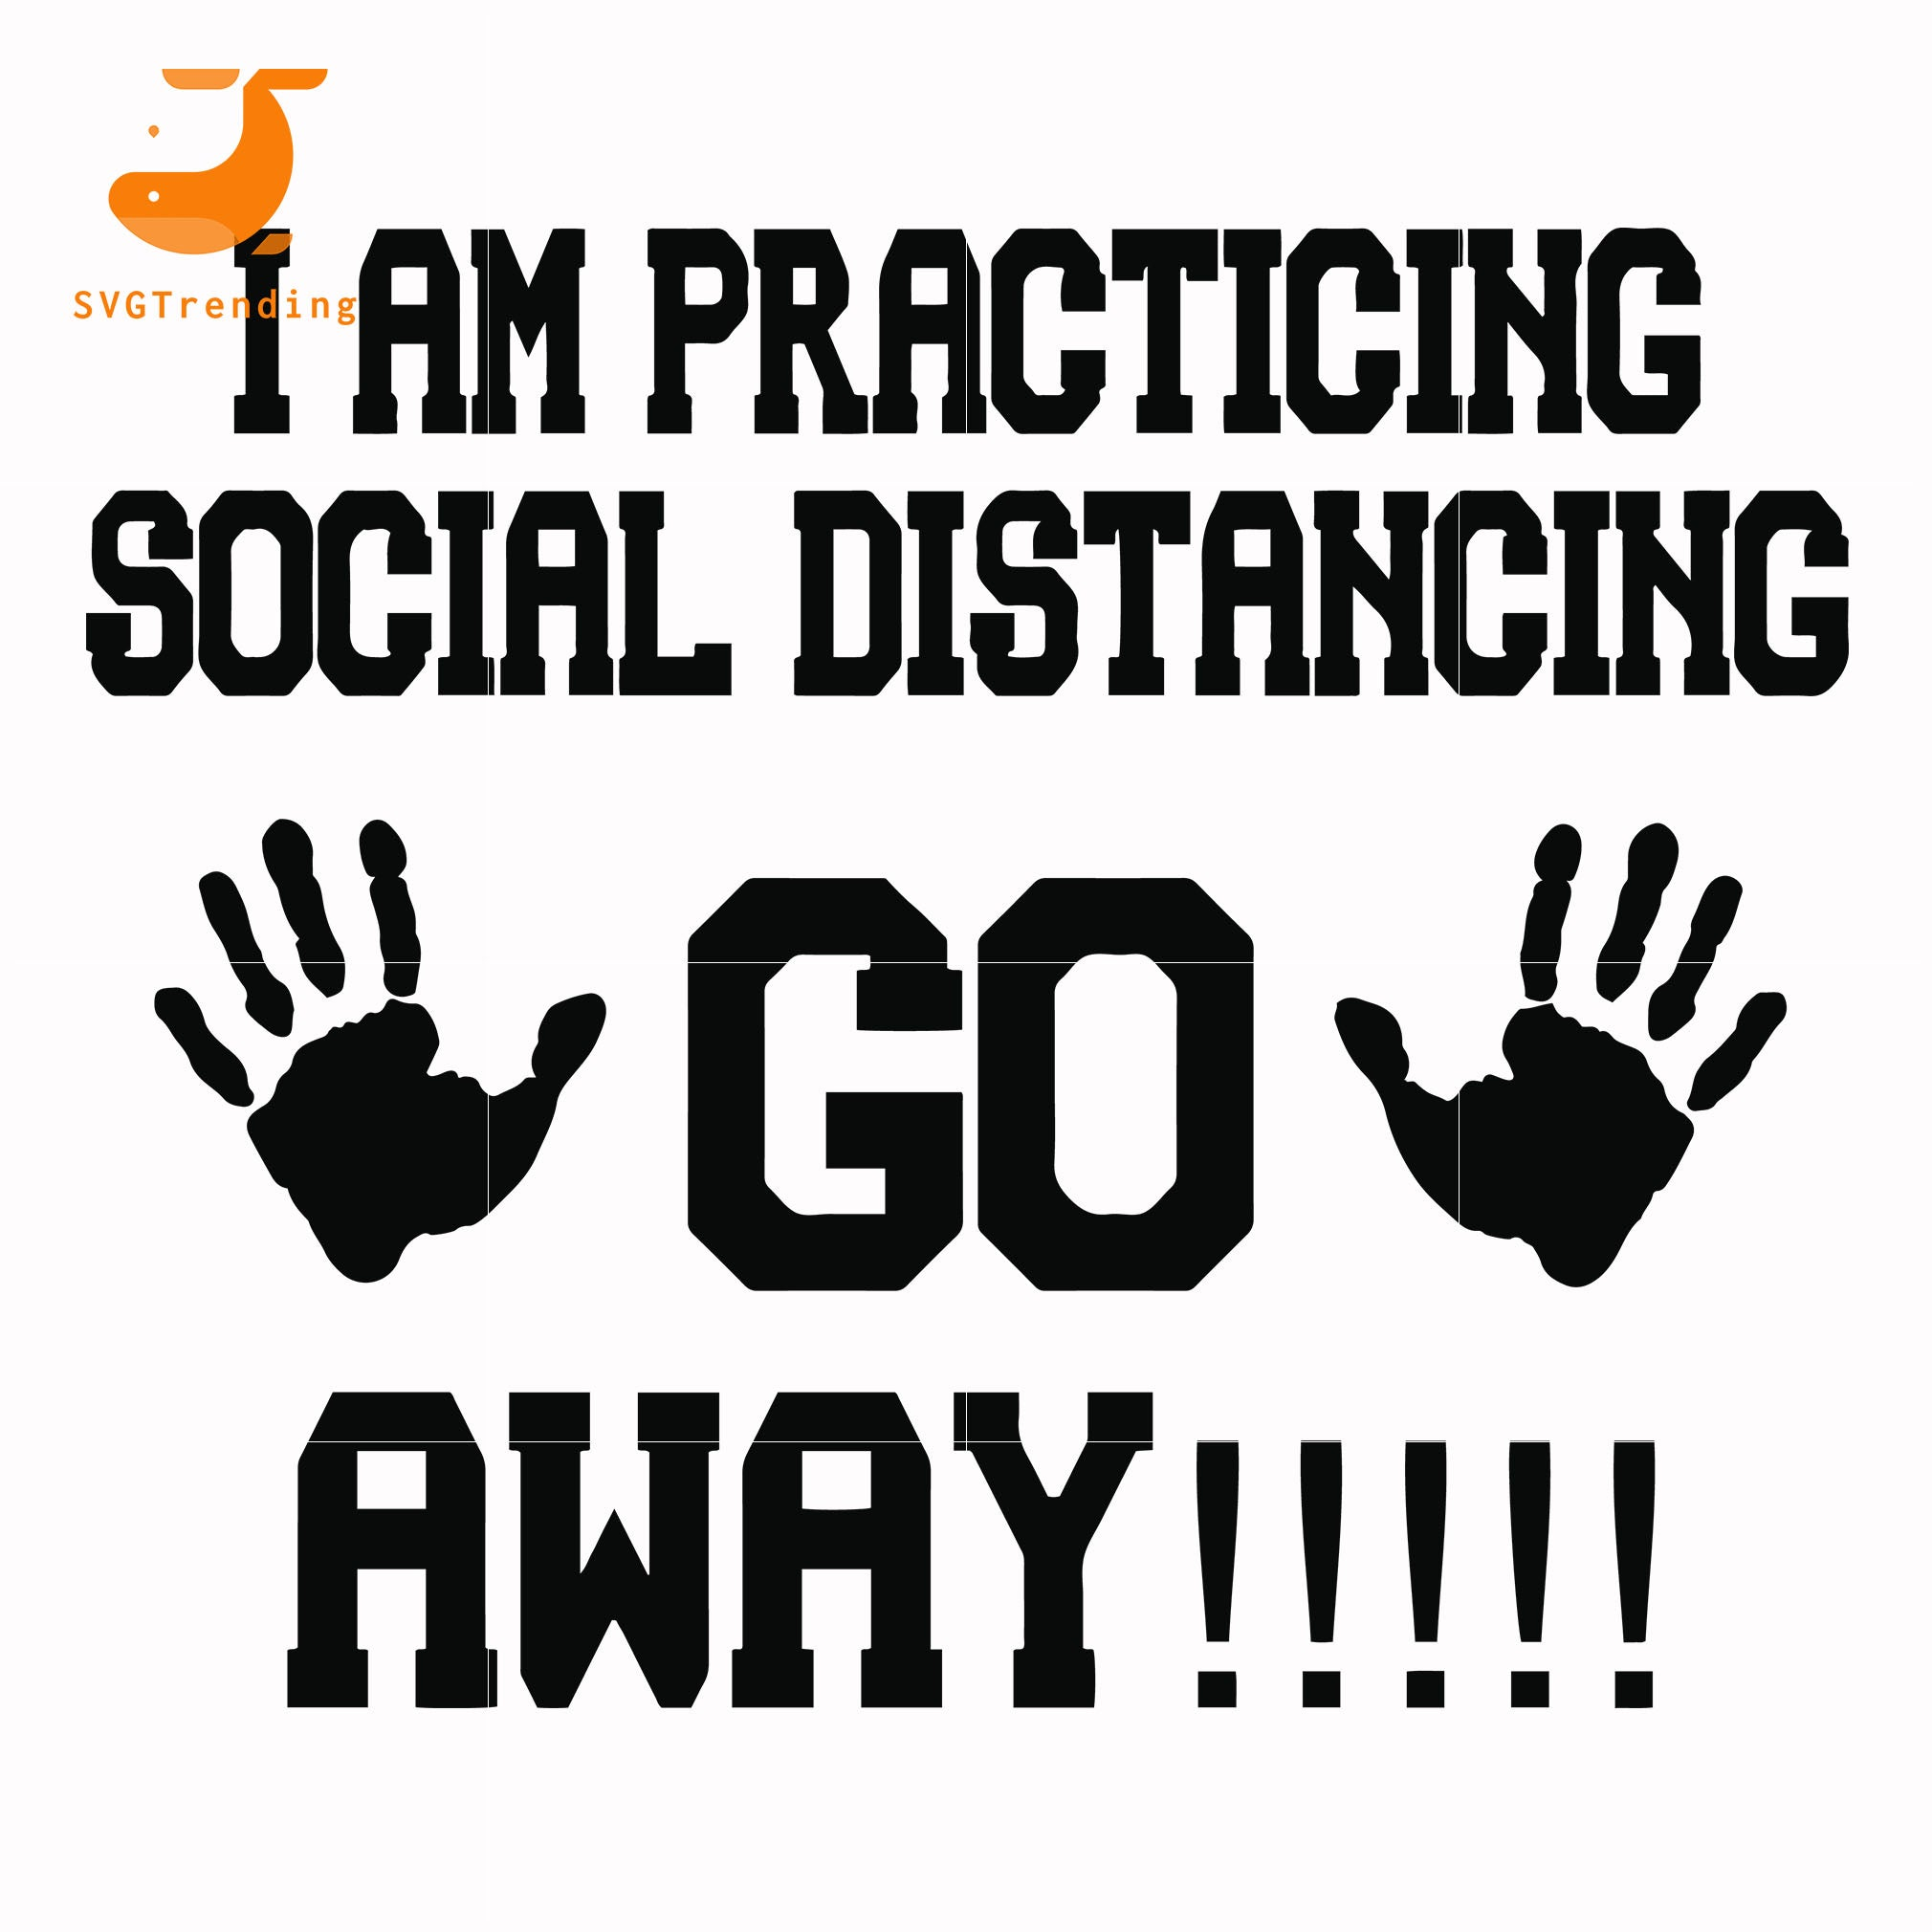 I am practicing social distancing go away svg, dxf, eps, png digital file